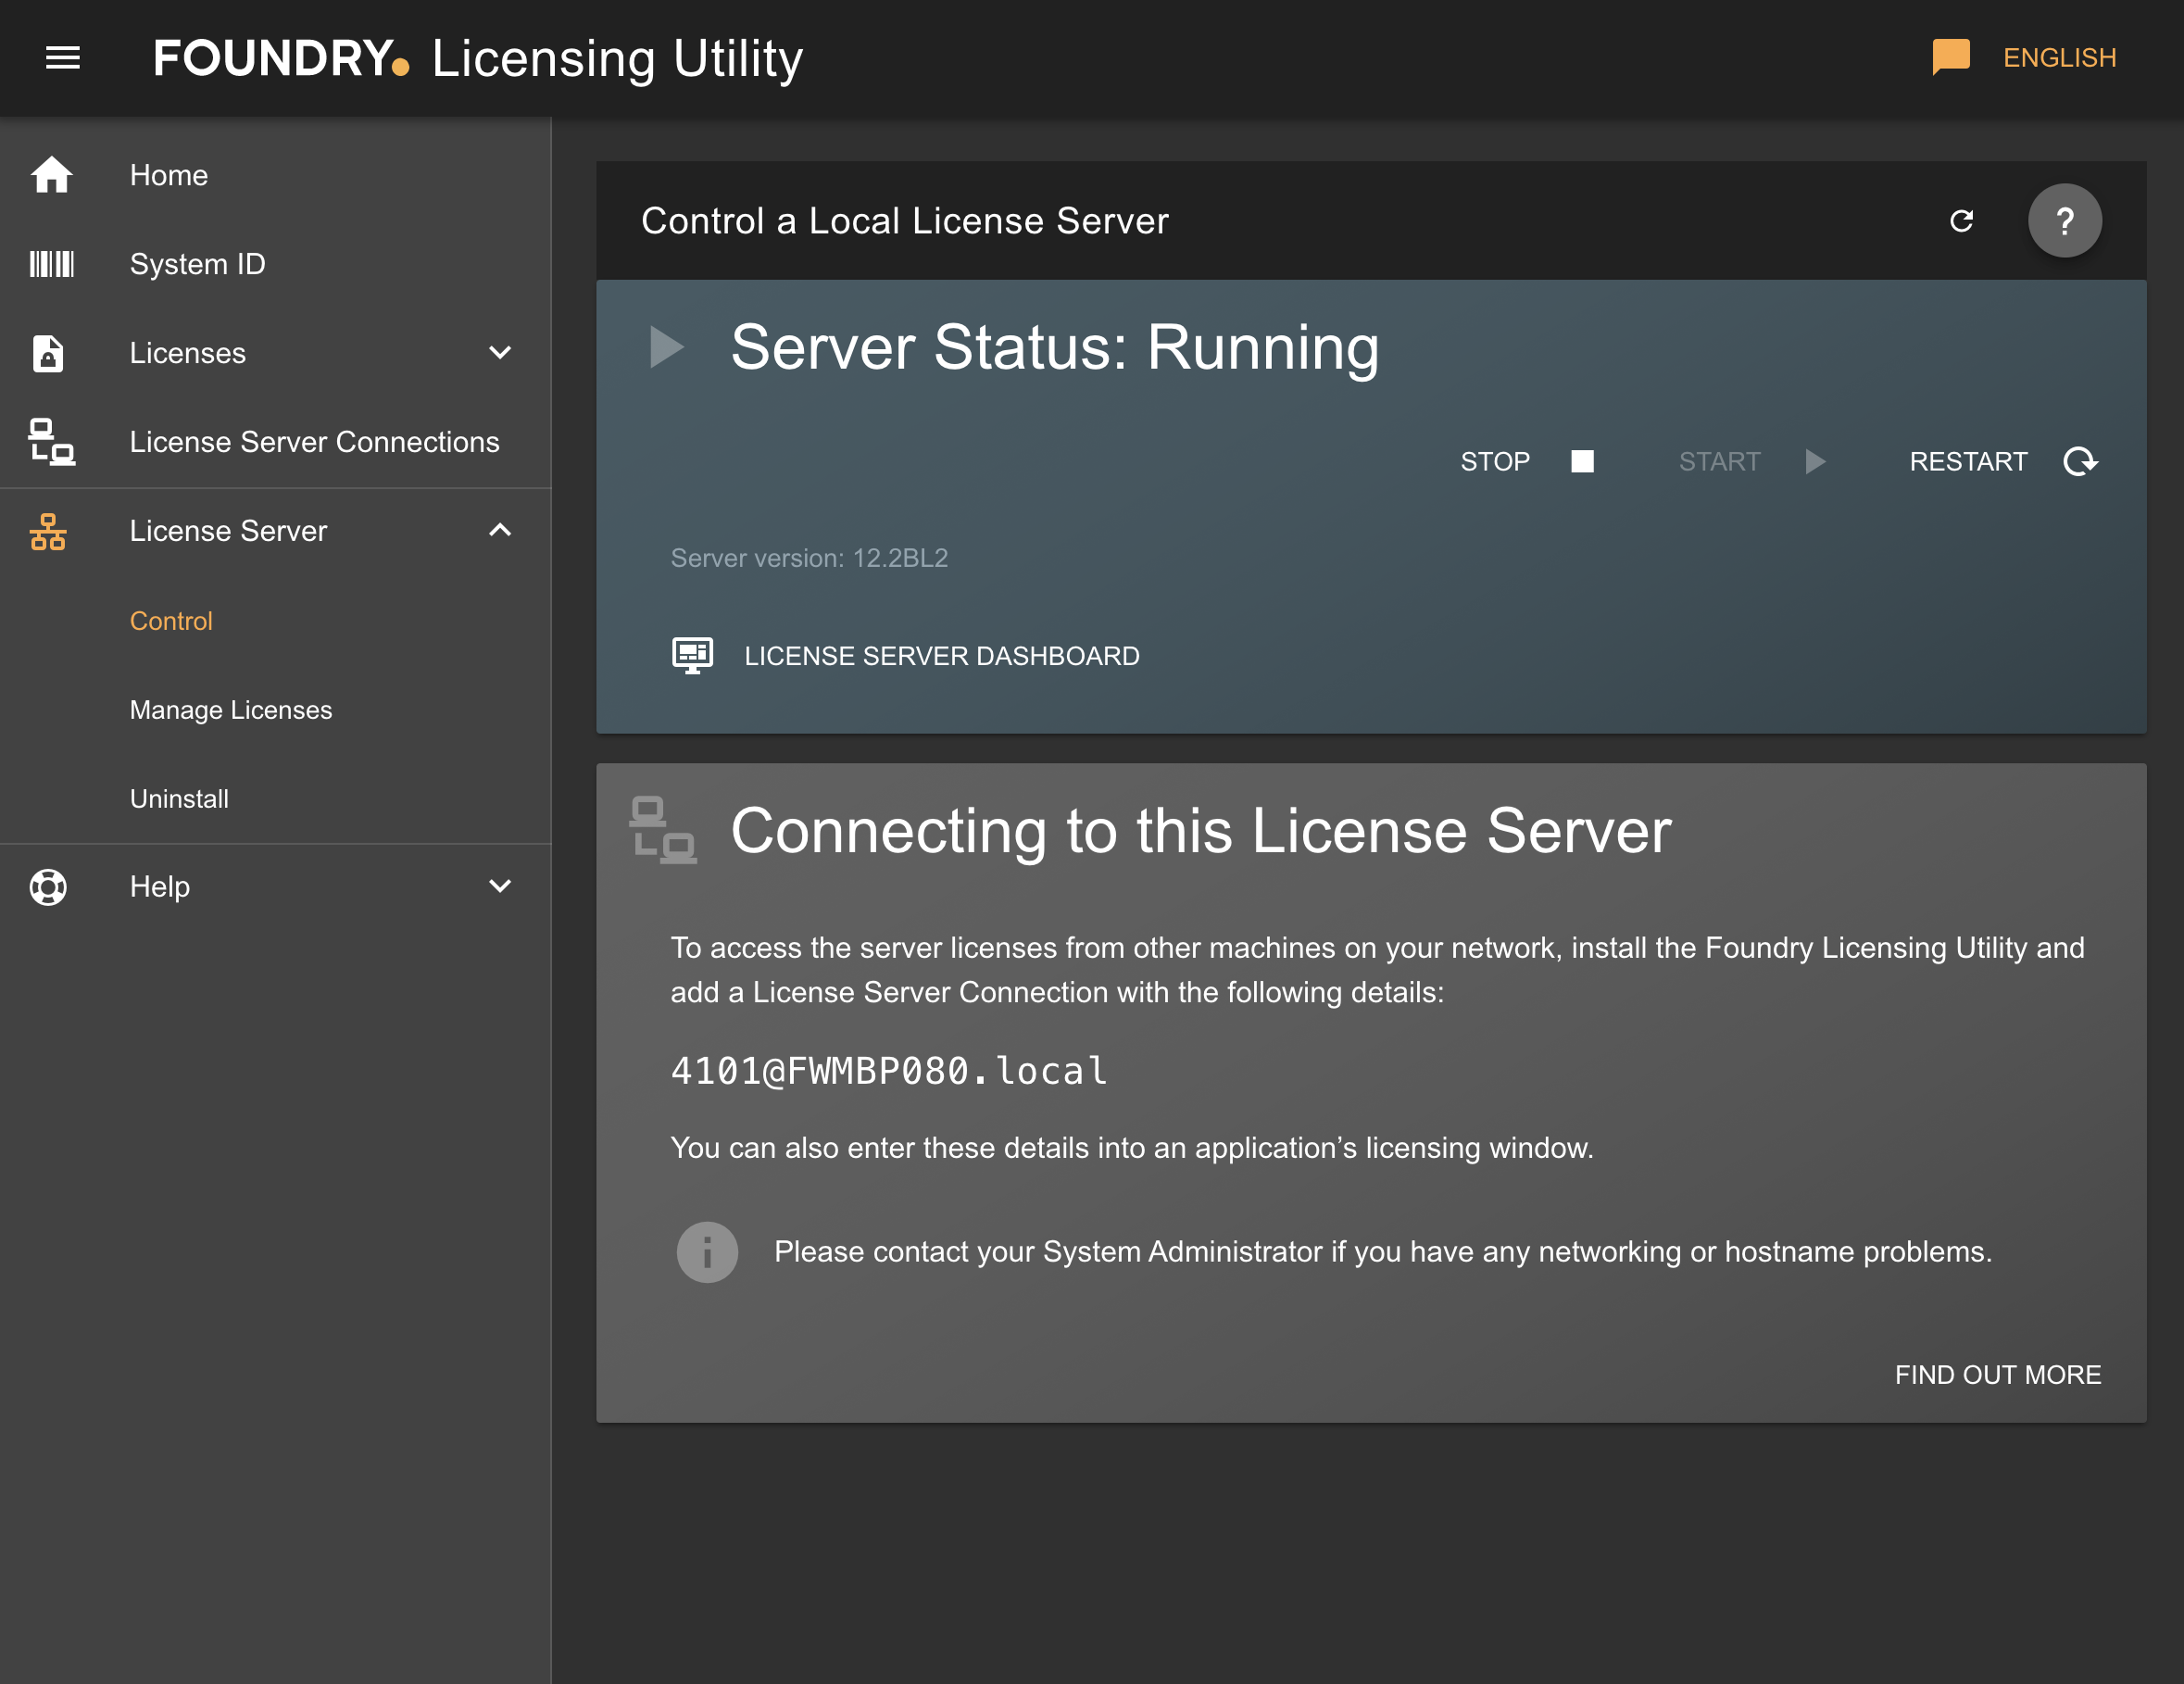 Q100532: How to manage your License Server using the Foundry